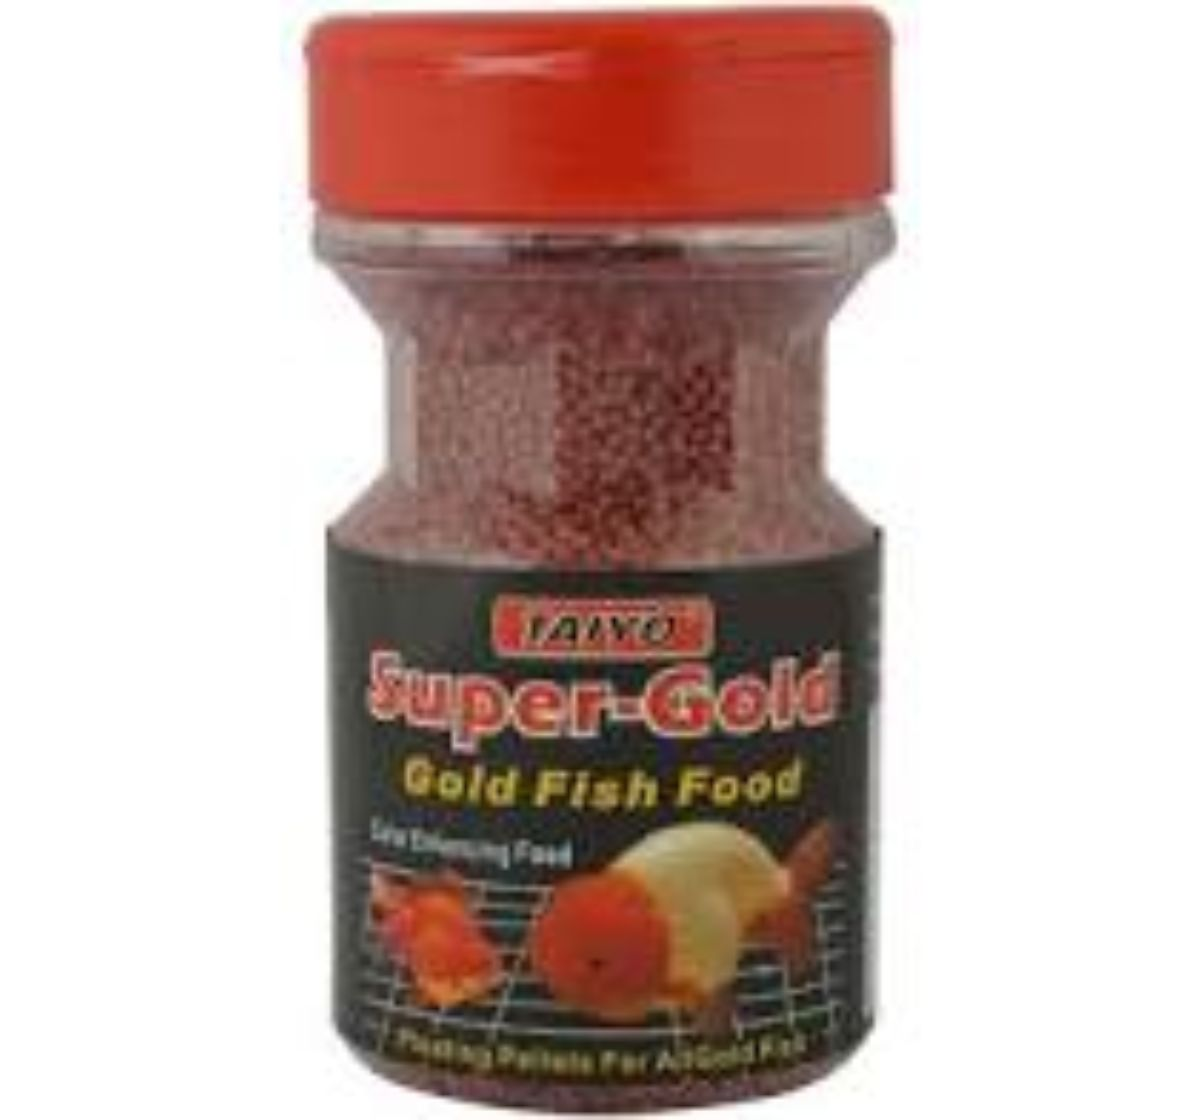 Taiyo Super Gold Gold Fish Food - 100 gm (Pack Of 2)